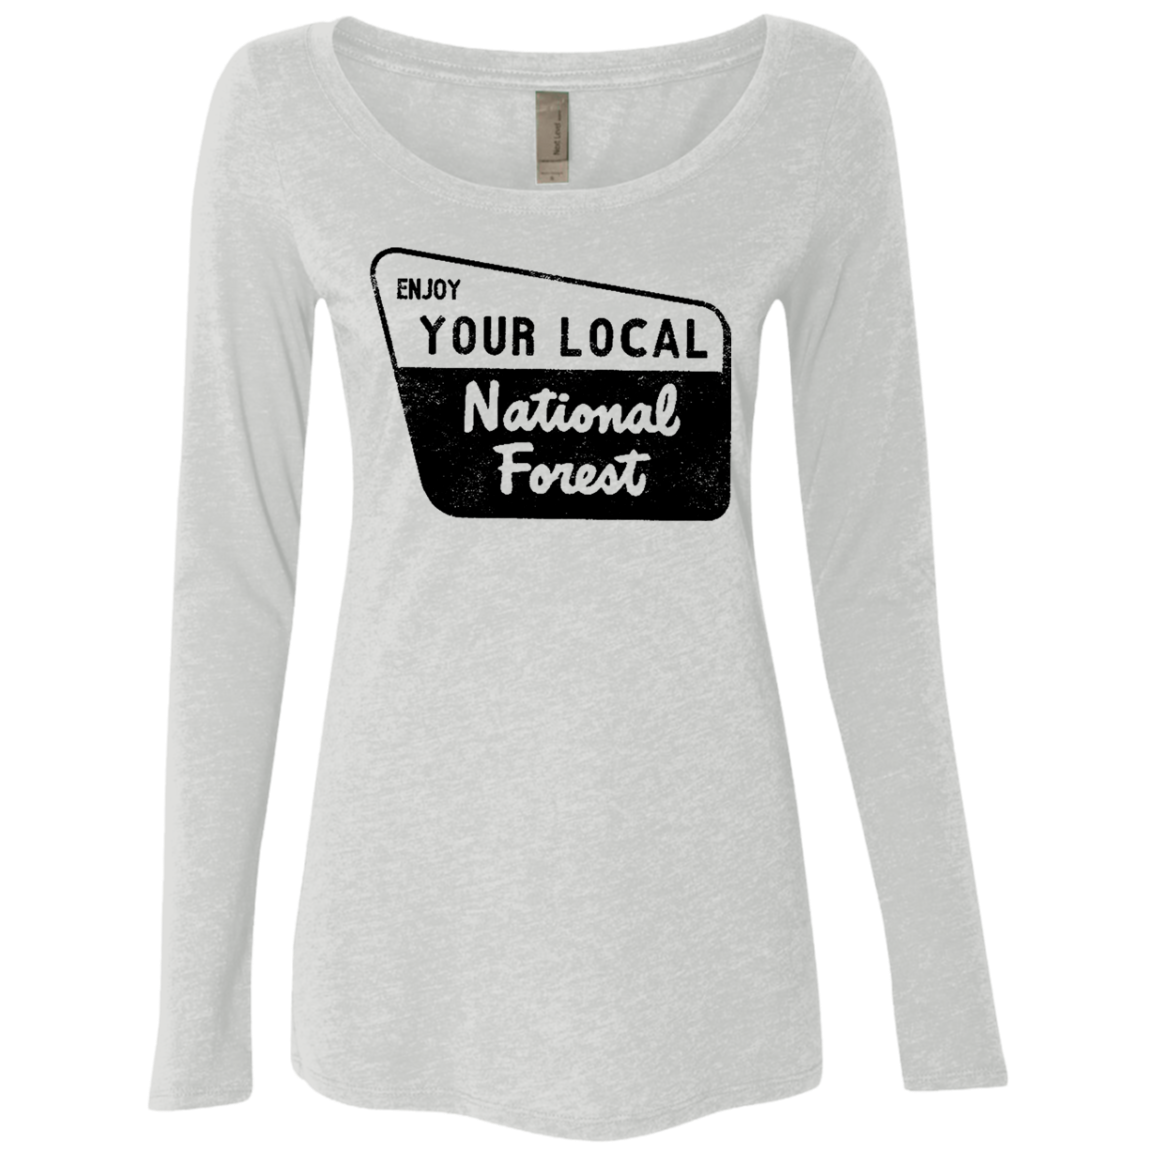 Enjoy Your Local Natonal Forest Women's Long Sleeve Tee